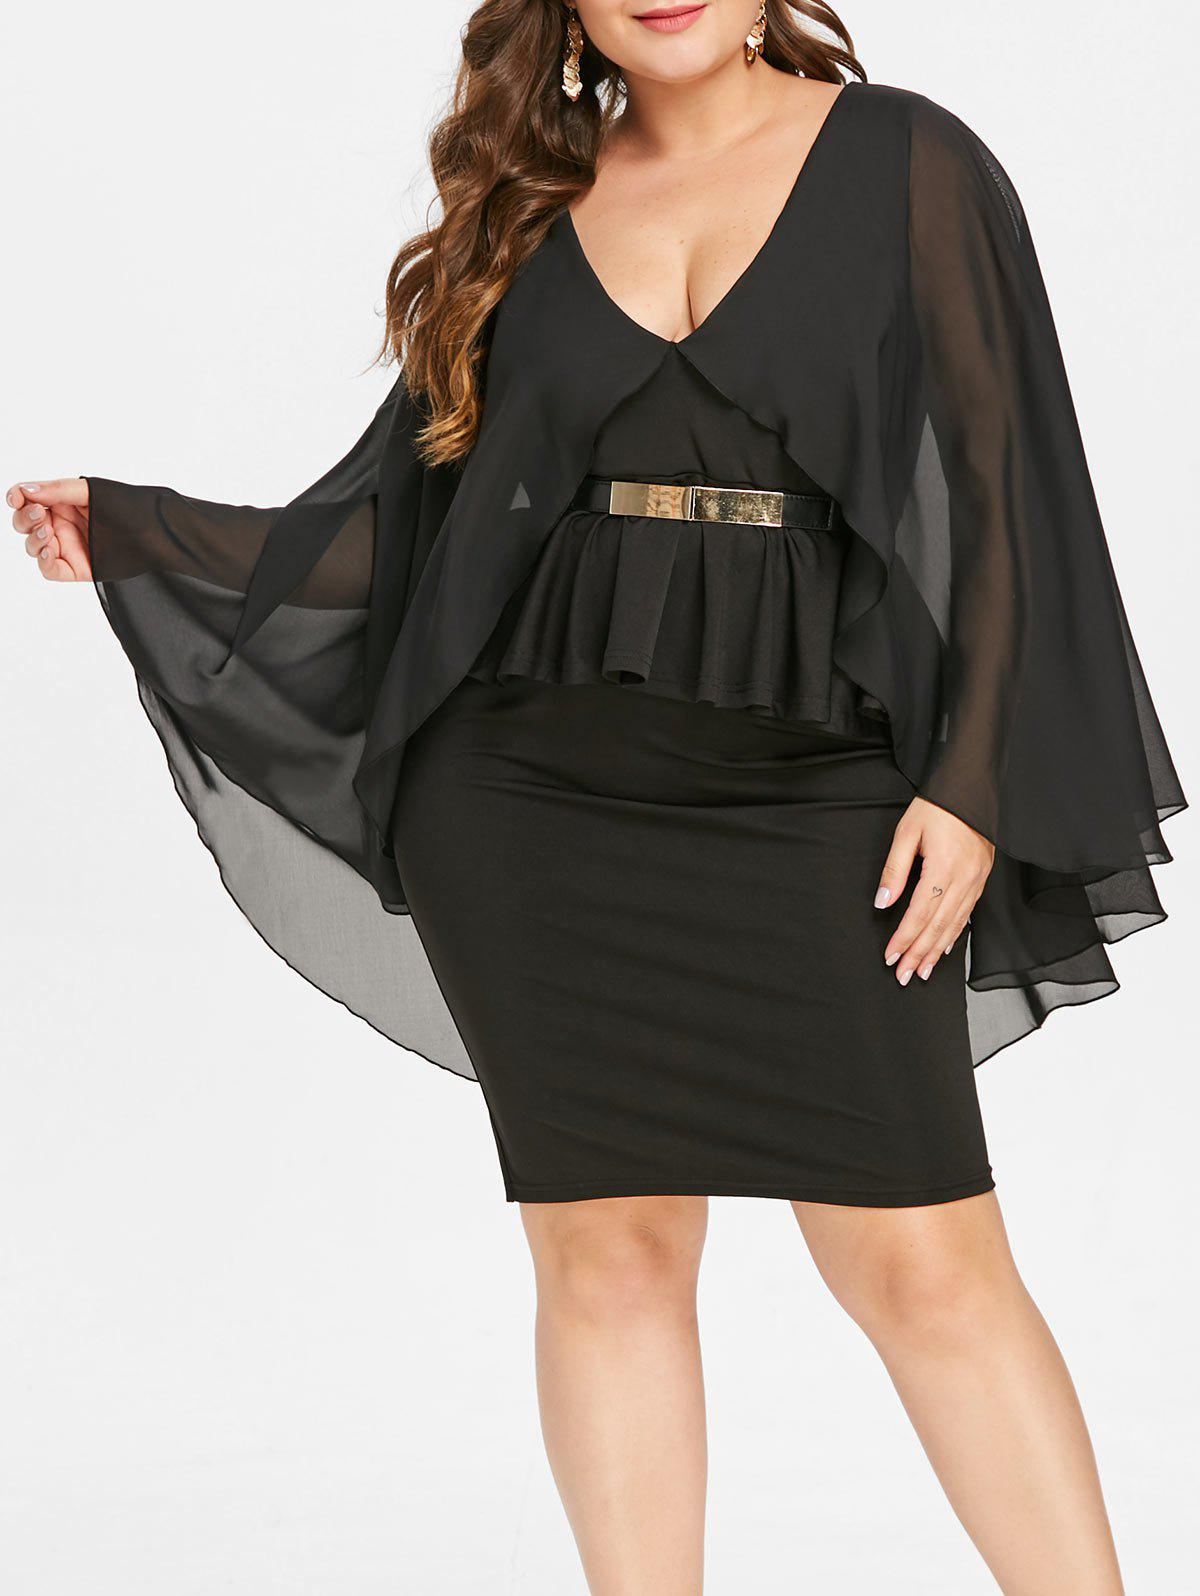 Plunging Neck Plus Size Cape Peplum Dress